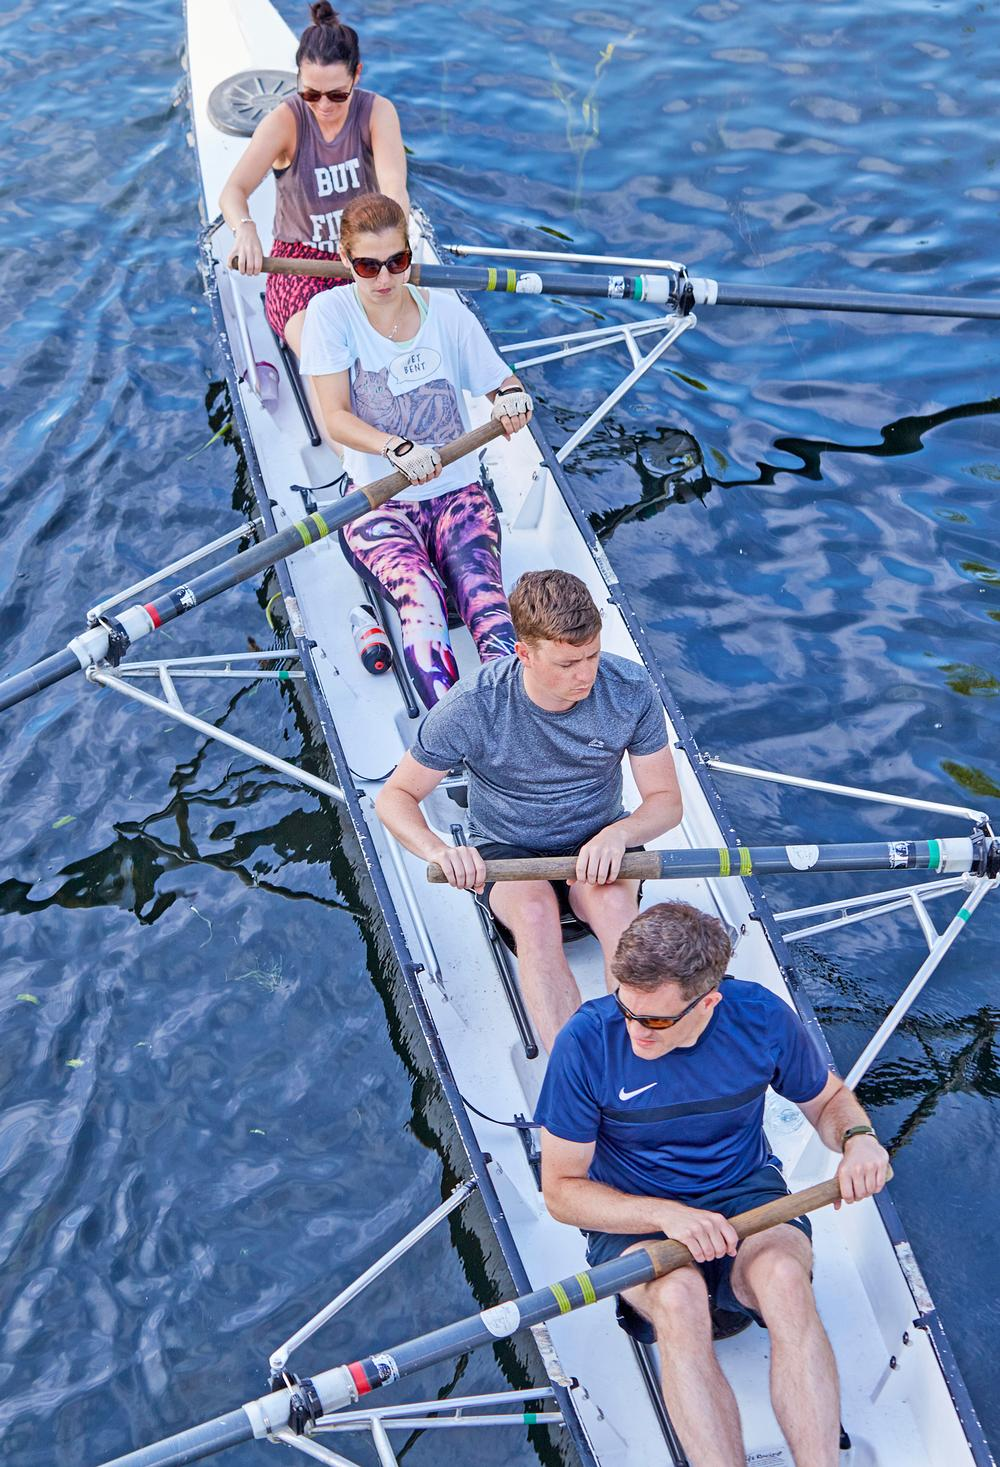 British Rowing has part-funded packages of stable beginner boats, along with structured learn-to-row courses